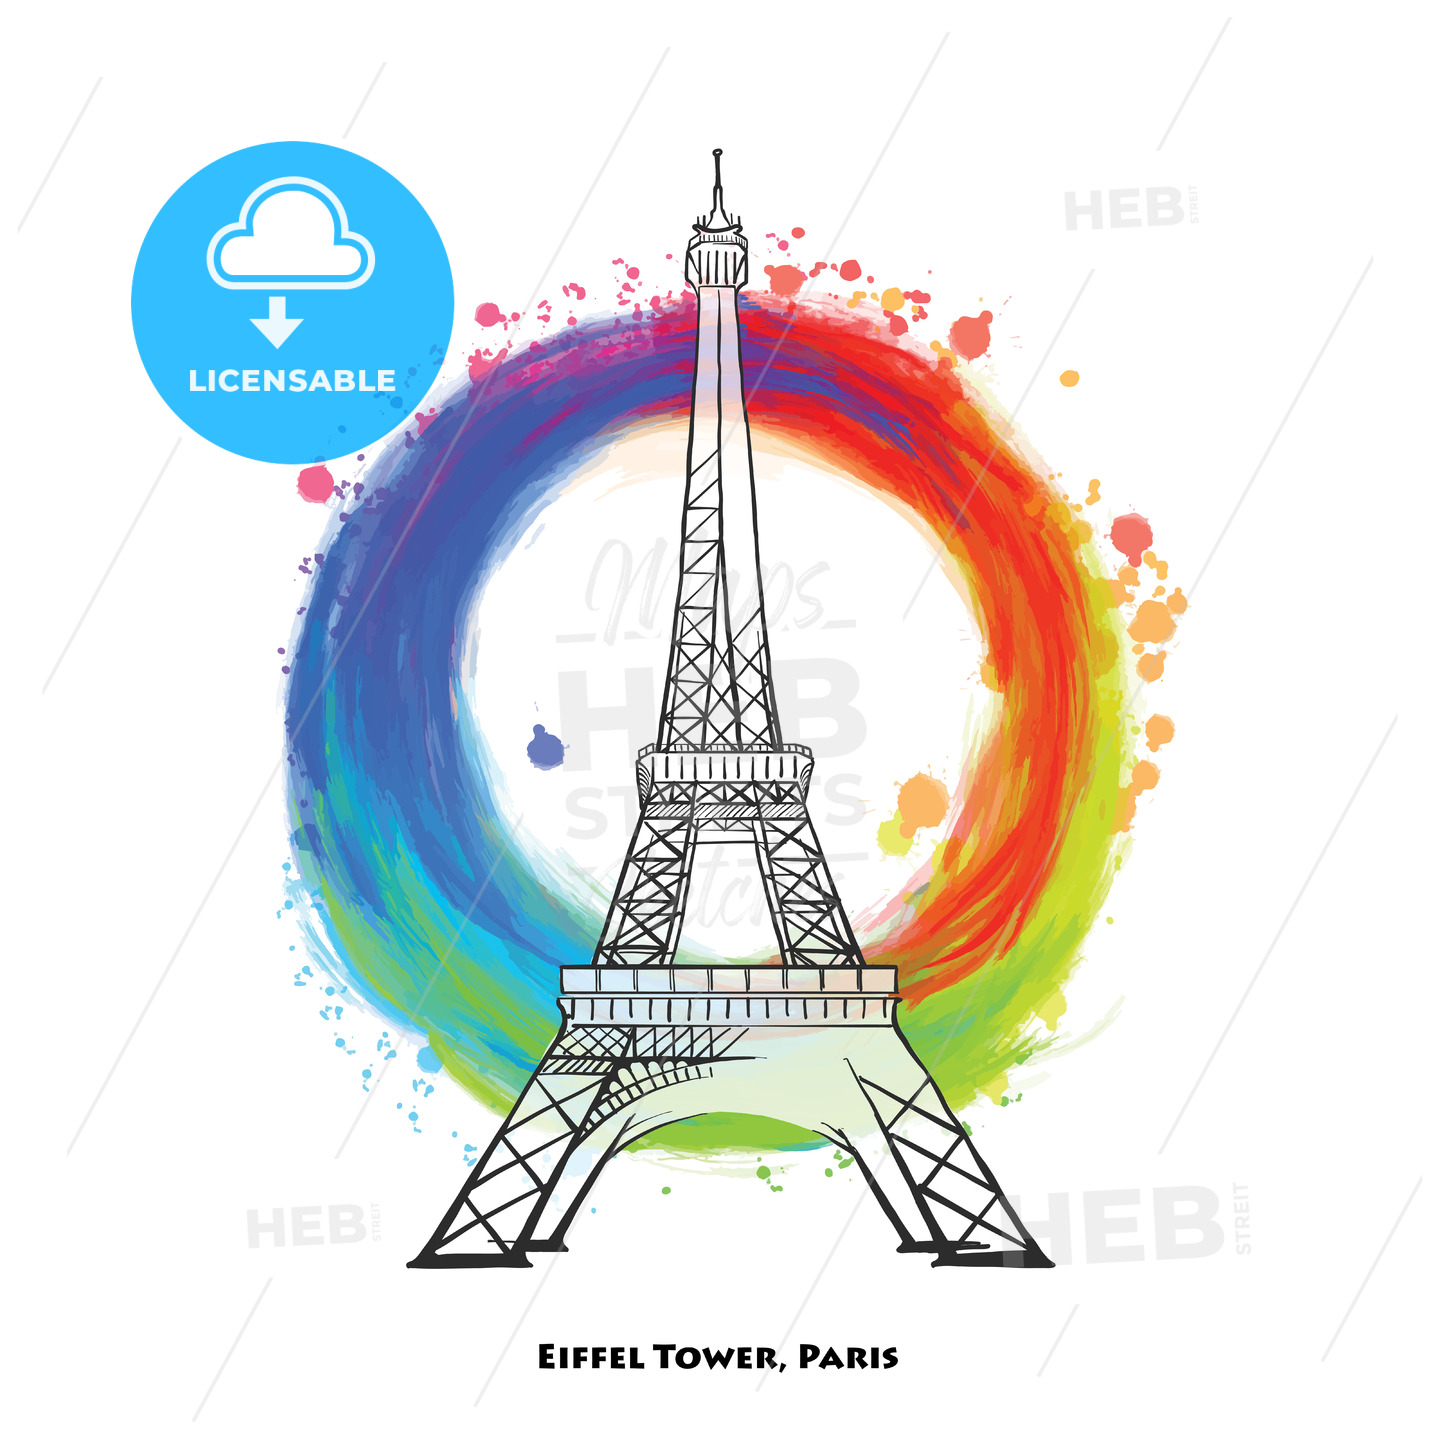 Paris Eiffel Tower drawing - HEBSTREITS